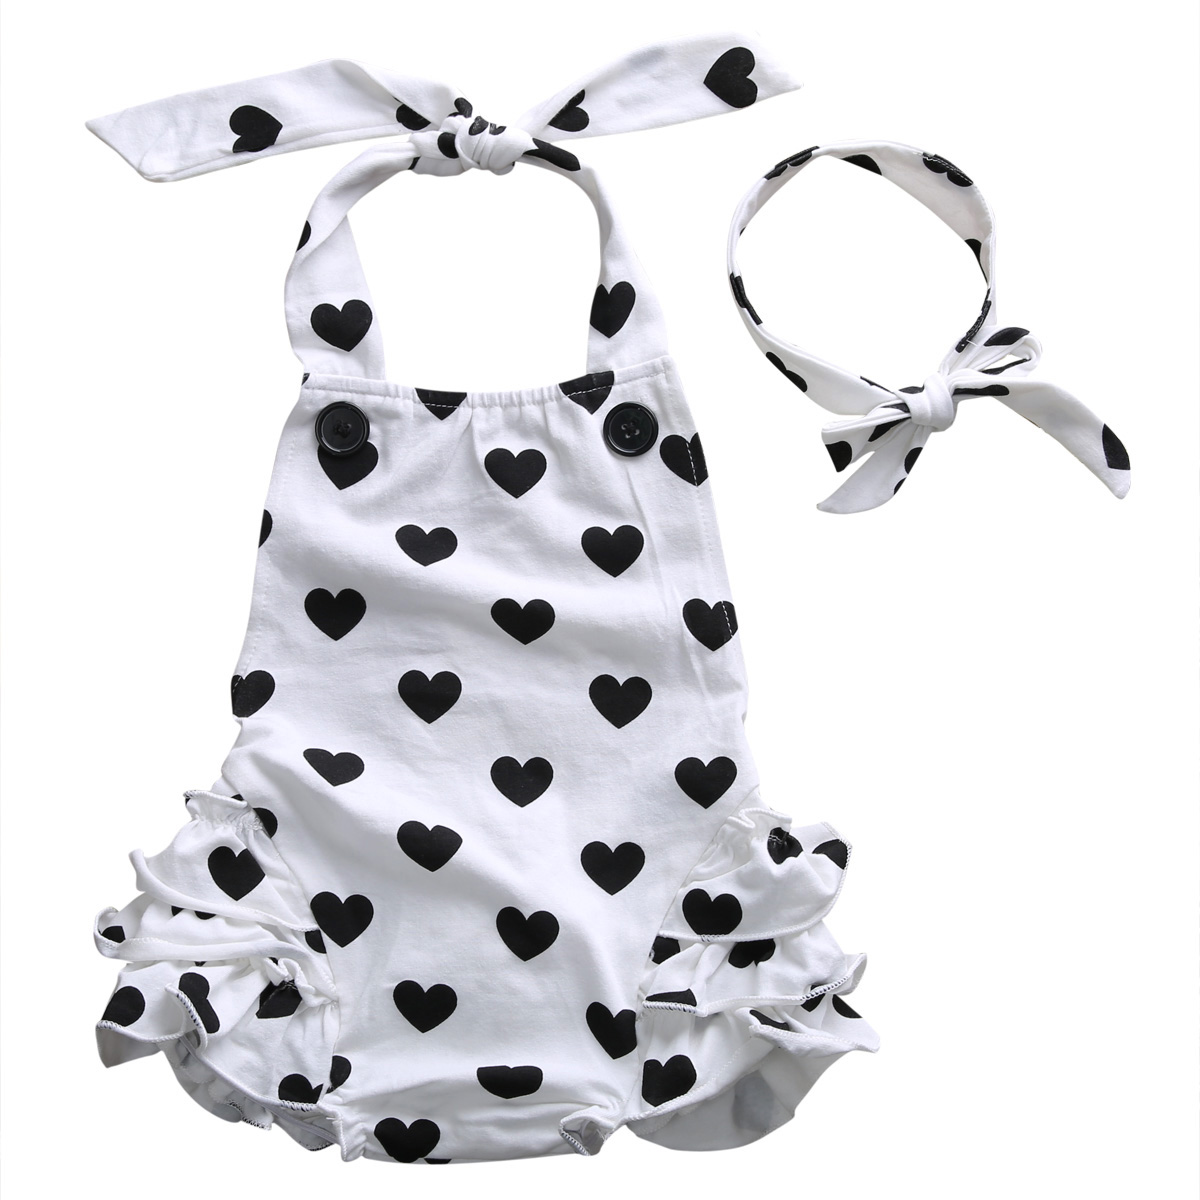 Infant Baby Girl Romper Print Love Heart Sleeve Jumpsuit Rompers+Headband 2pcs Summer Baby Clothes Halter Rompers Outfit Set fashion baby christmas tutu dress rompers short sleeve romper headband baby girl infant clothing sets baby birthday costumes